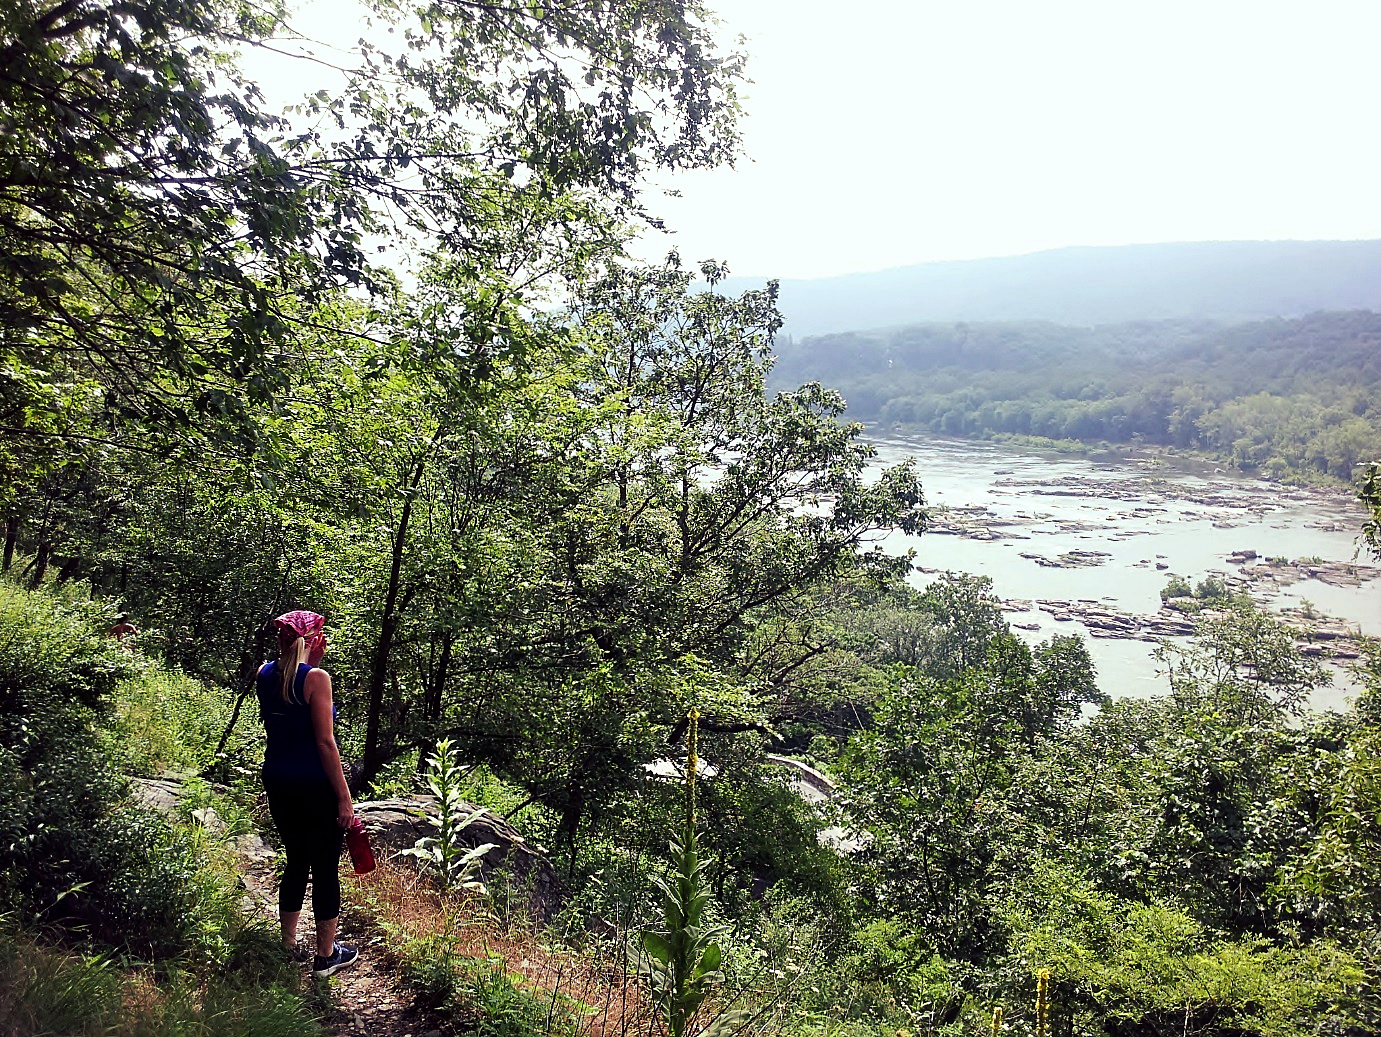 Hiking along the Potomac River, Maryland Heights, C&O Canal National Historical Park. Tracy Lind, 2016.